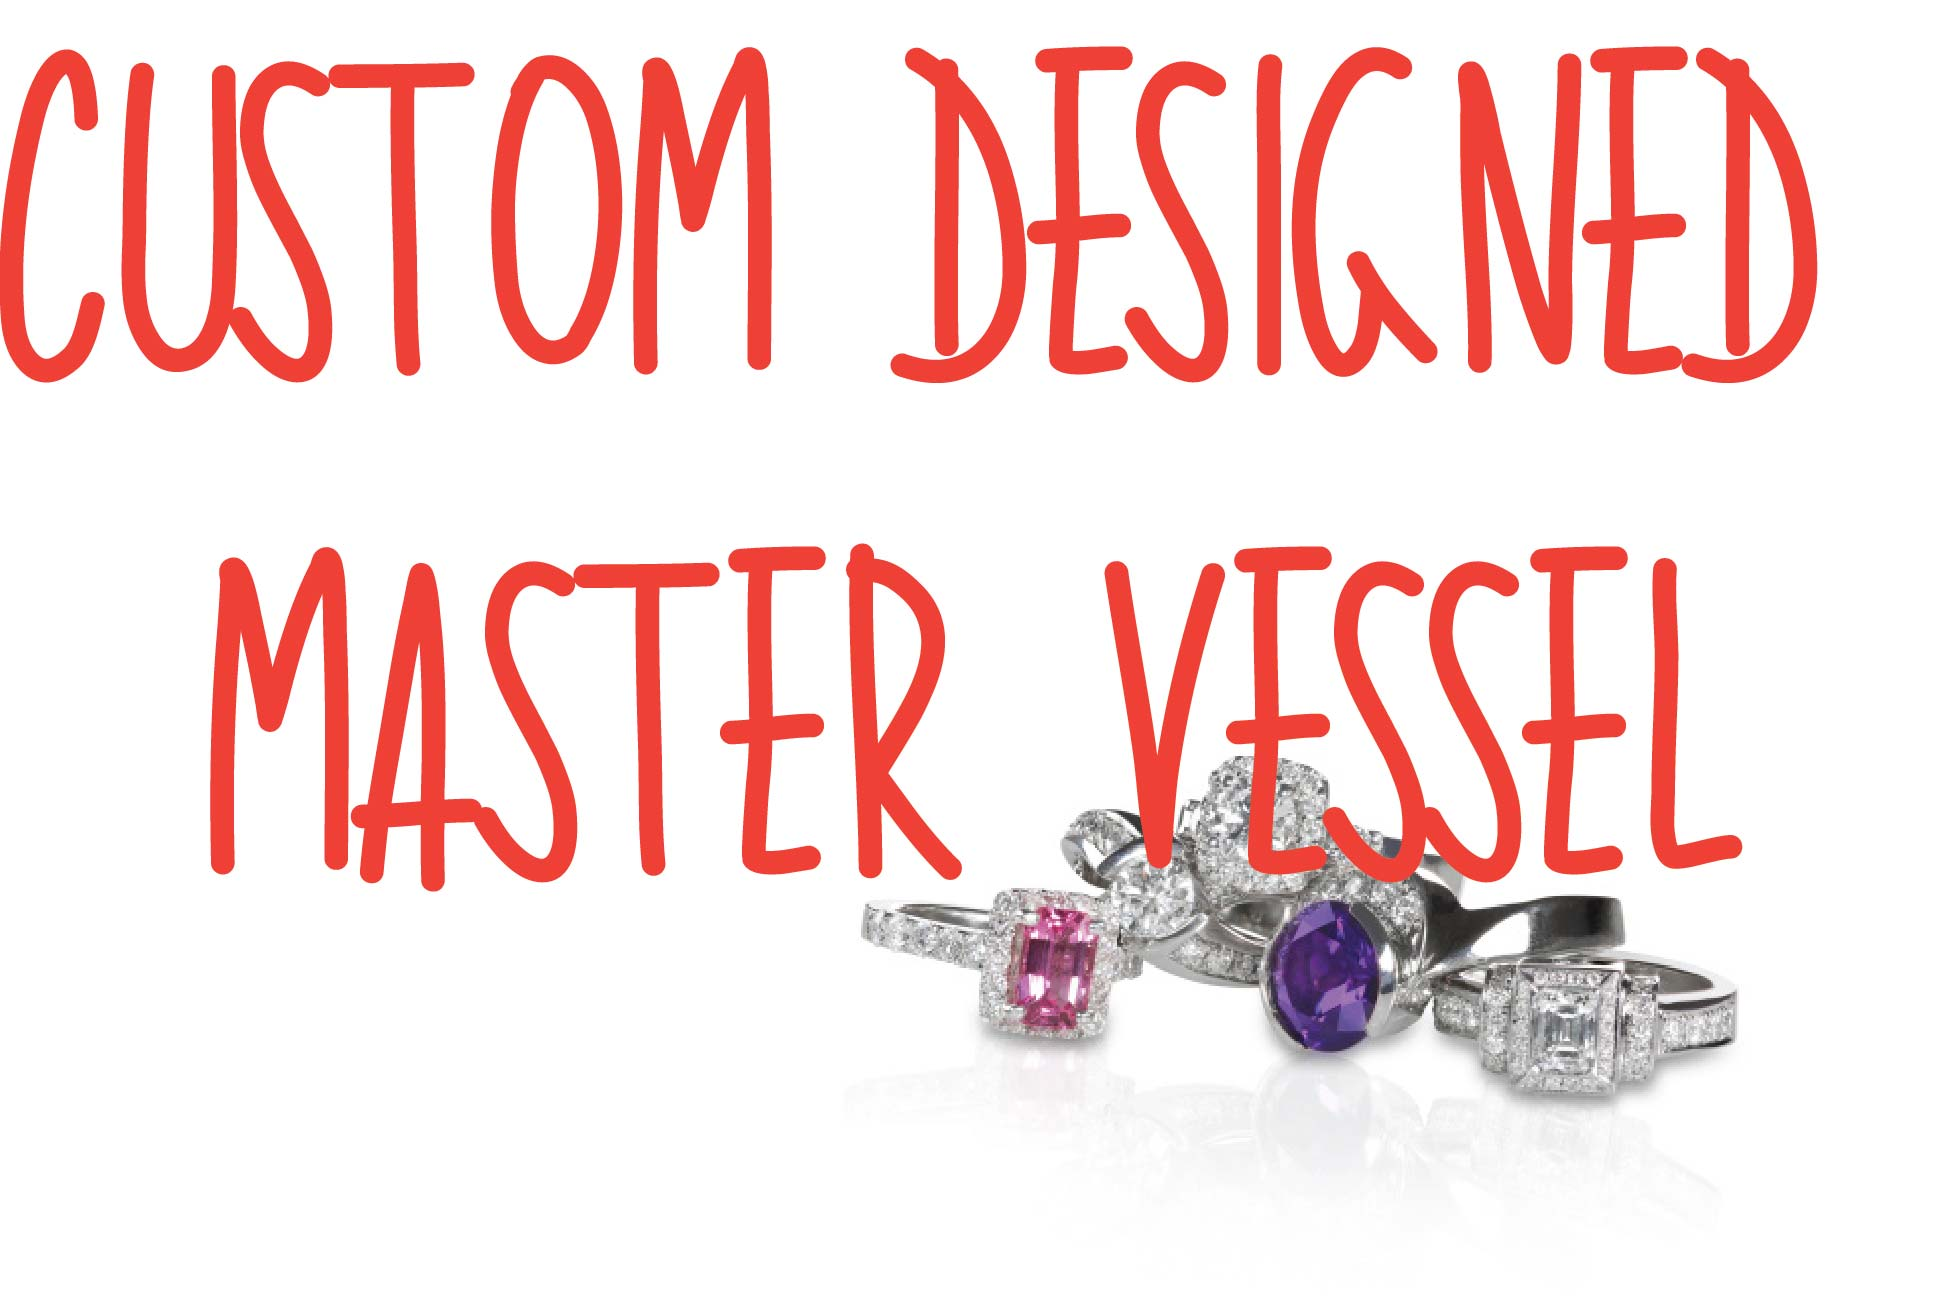 Bonus Points Redemption - Get A Custom Designed Master Vessel For Free